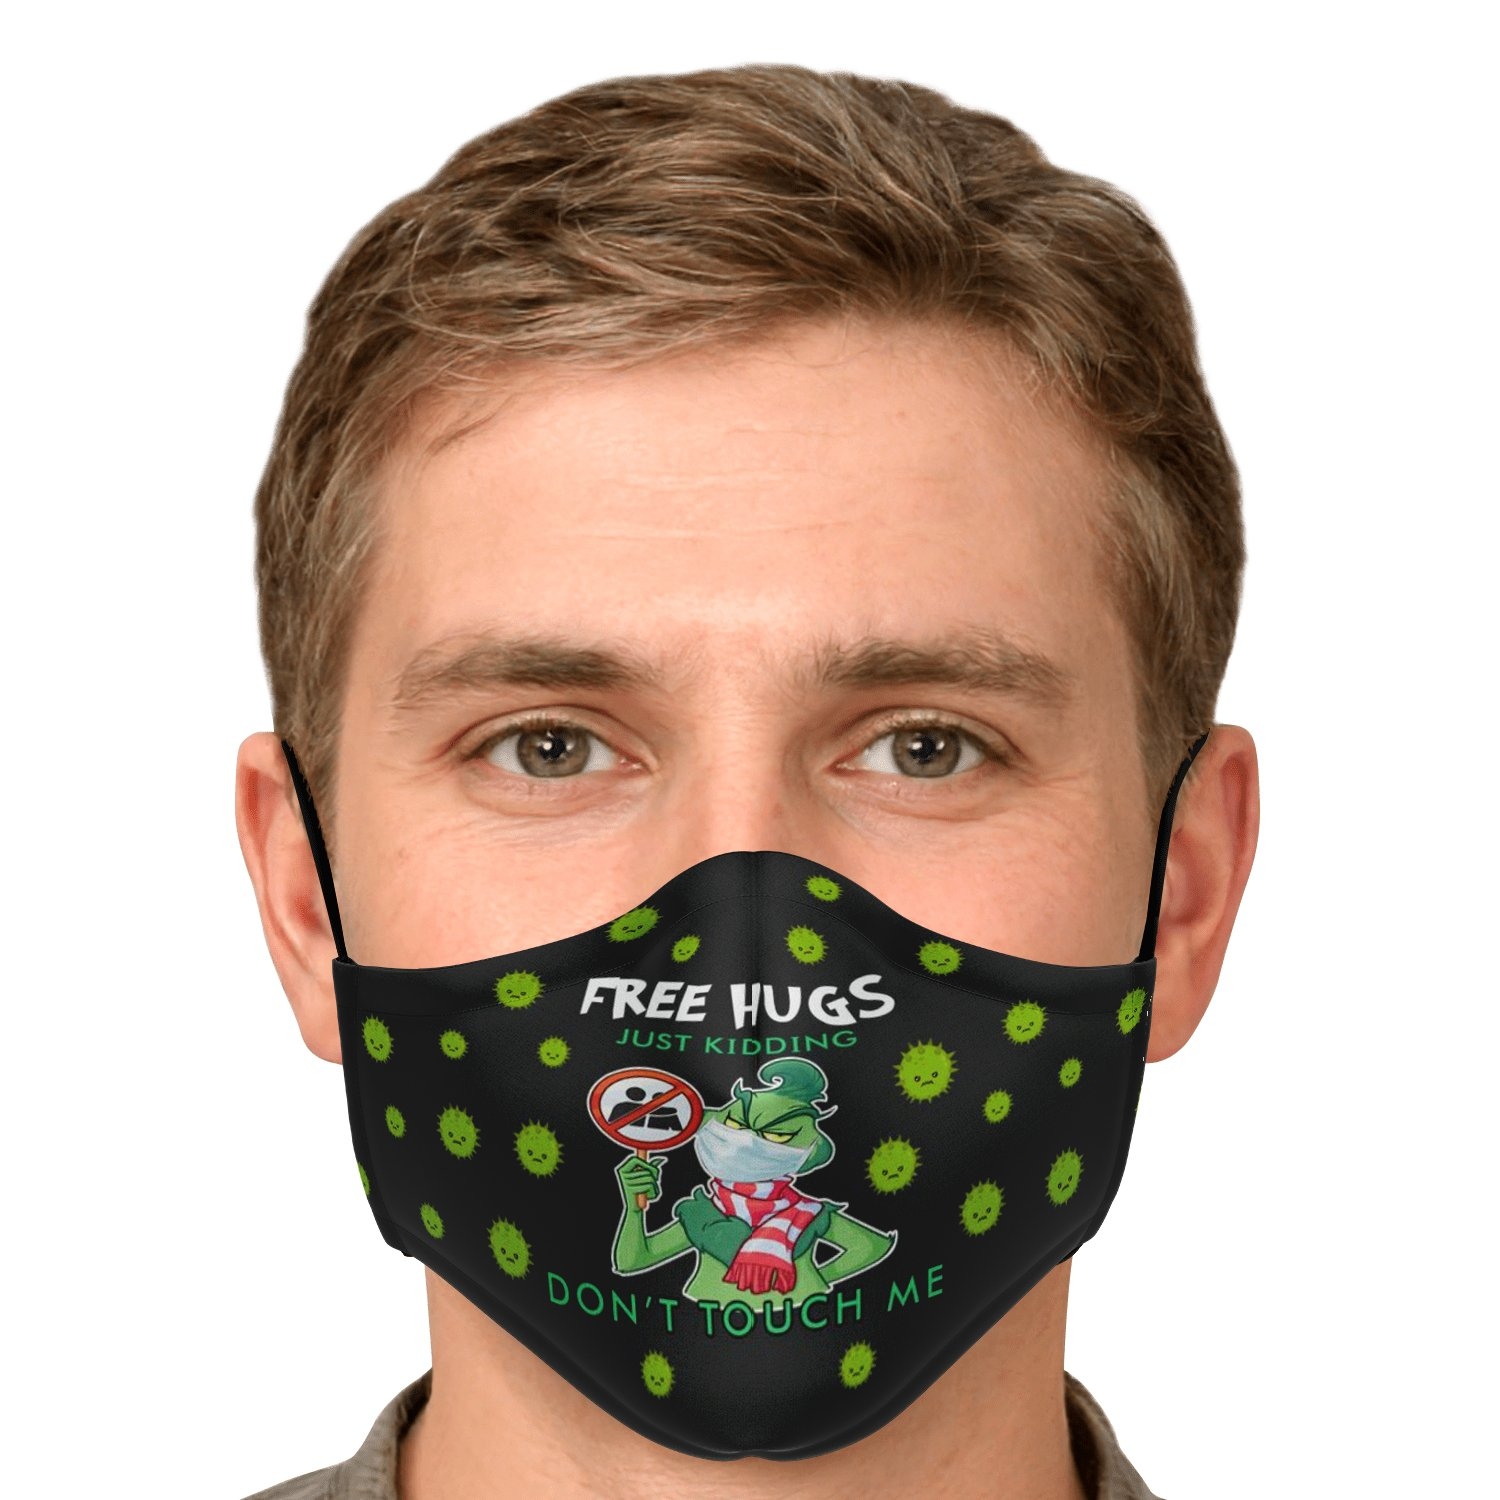 Free Hugs Just Kidding Don't Touch Me The Grinch Face Mask 5